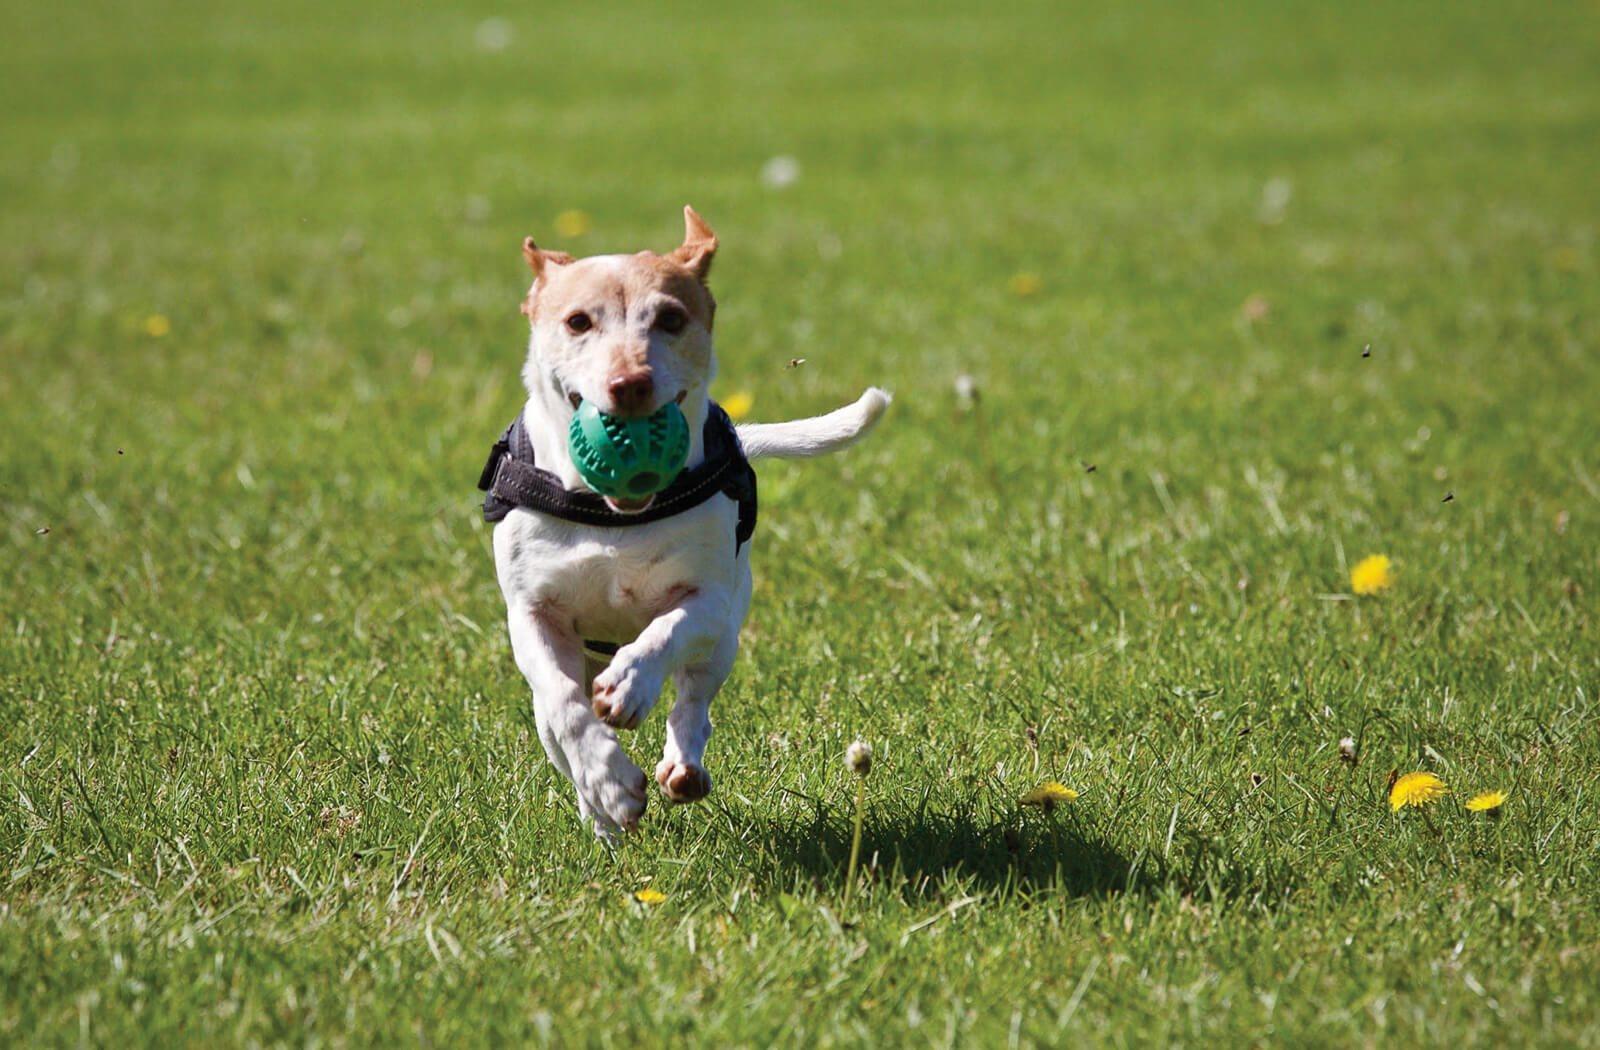 Pet friendly apartments in Fayetteville NC